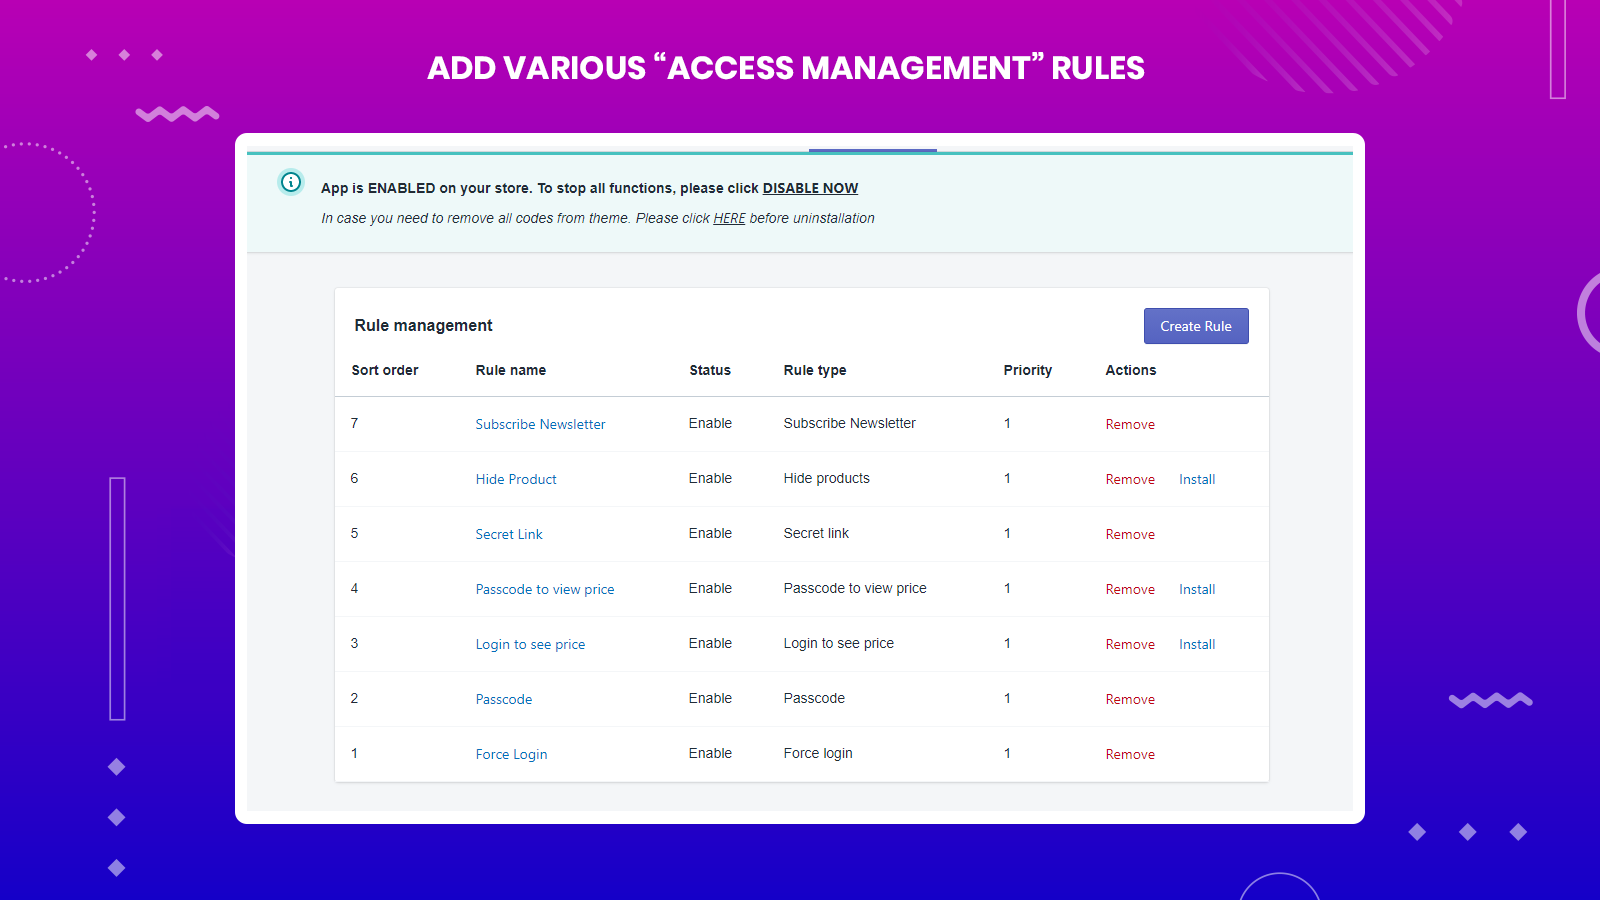 """You can use many """"Access Management"""" rules to benefit your site!"""